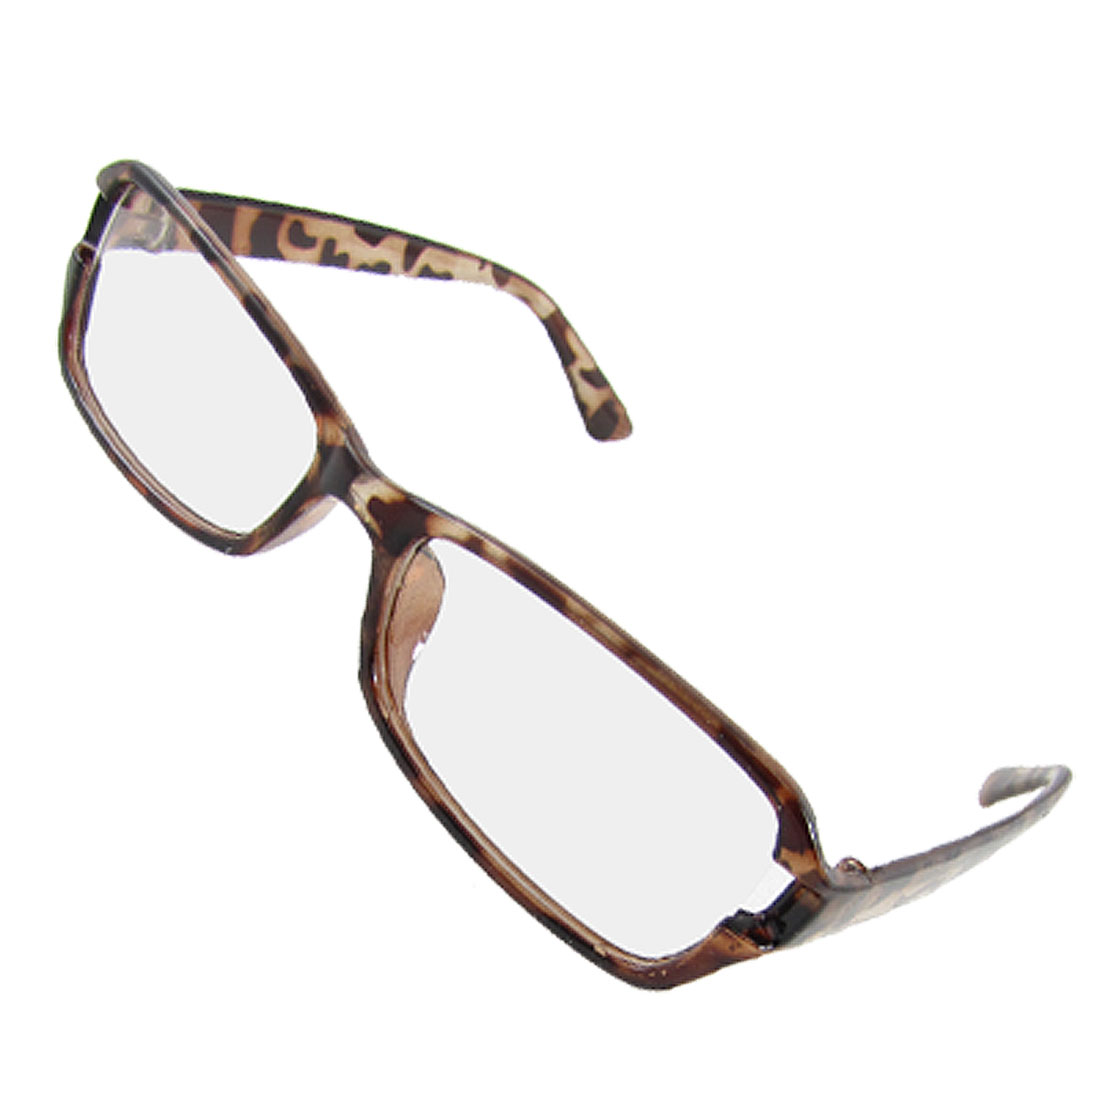 Unisex Leopard Printed Plastic Clear Lens Plano Glasses